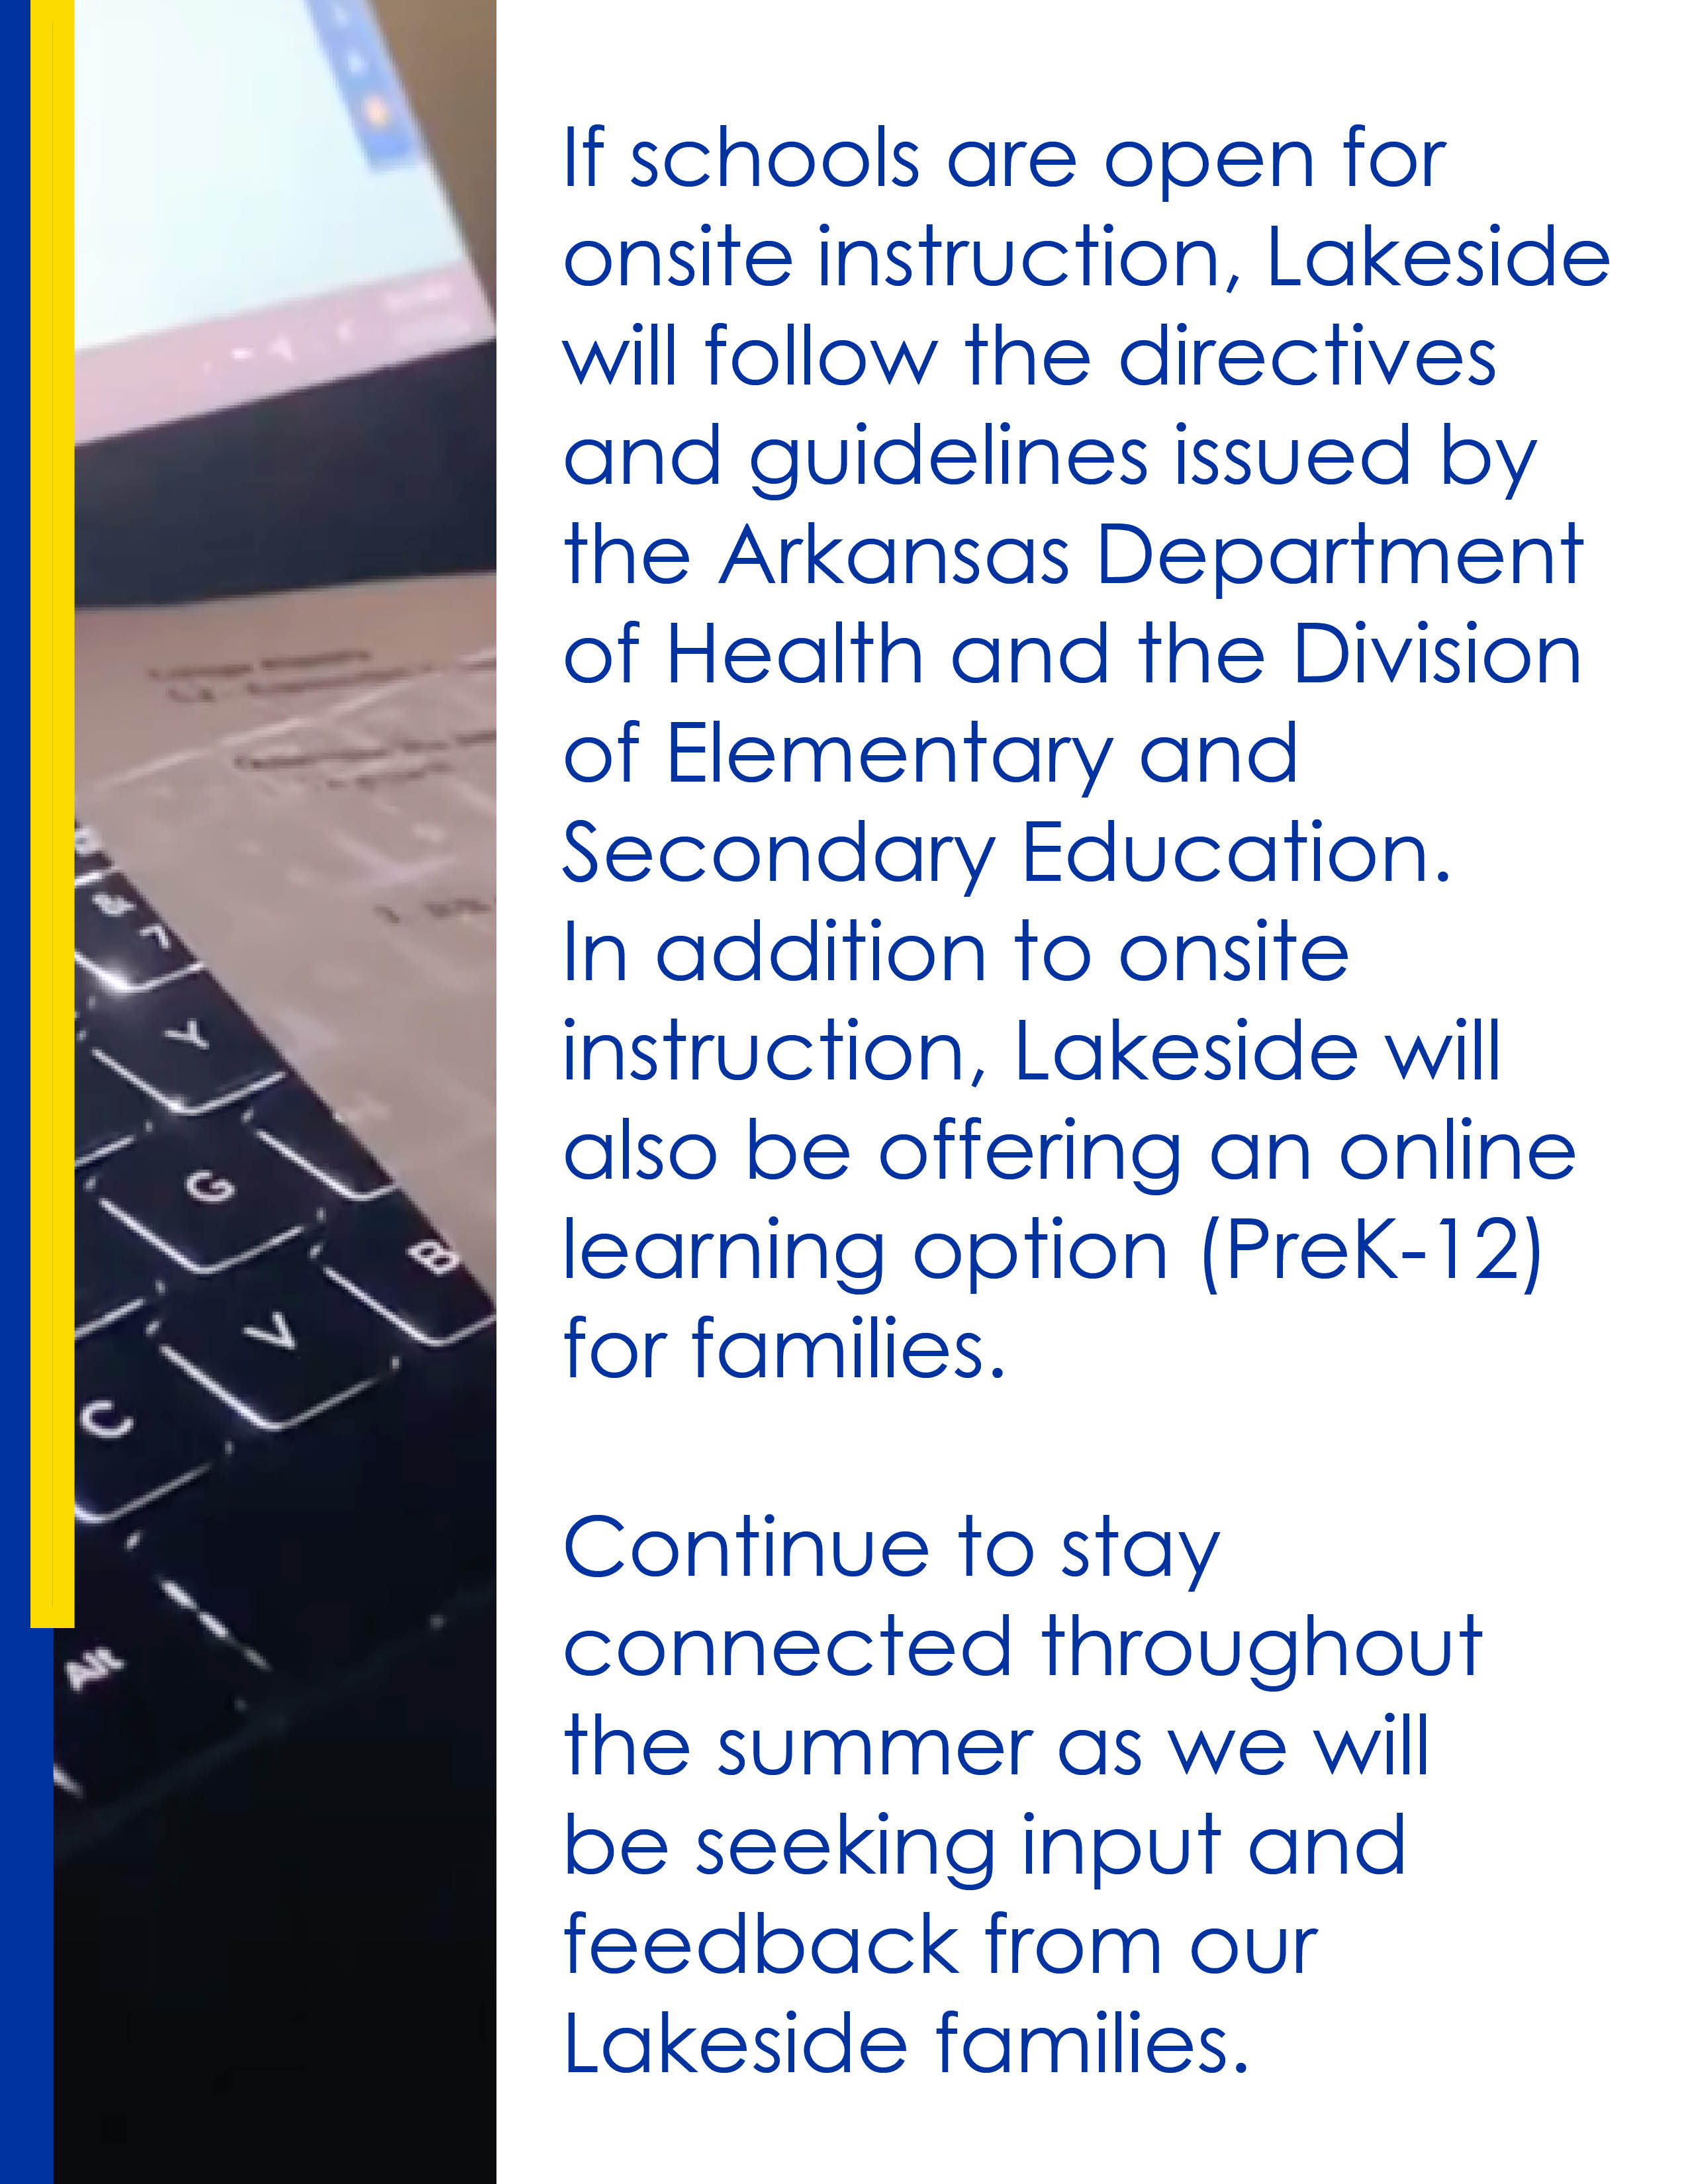 If schools are open for onsite instruction, Lakeside will follow the directives and guidelines issued by the Arkansas Department of Health and the Division of Elementary and Secondary Education. In addition to onsite instruction, Lakeside will also be offering an online learning option (PreK-12) for families.  Continue to stay connected throughout the summer as we will be seeking input and feedback from our Lakeside families.